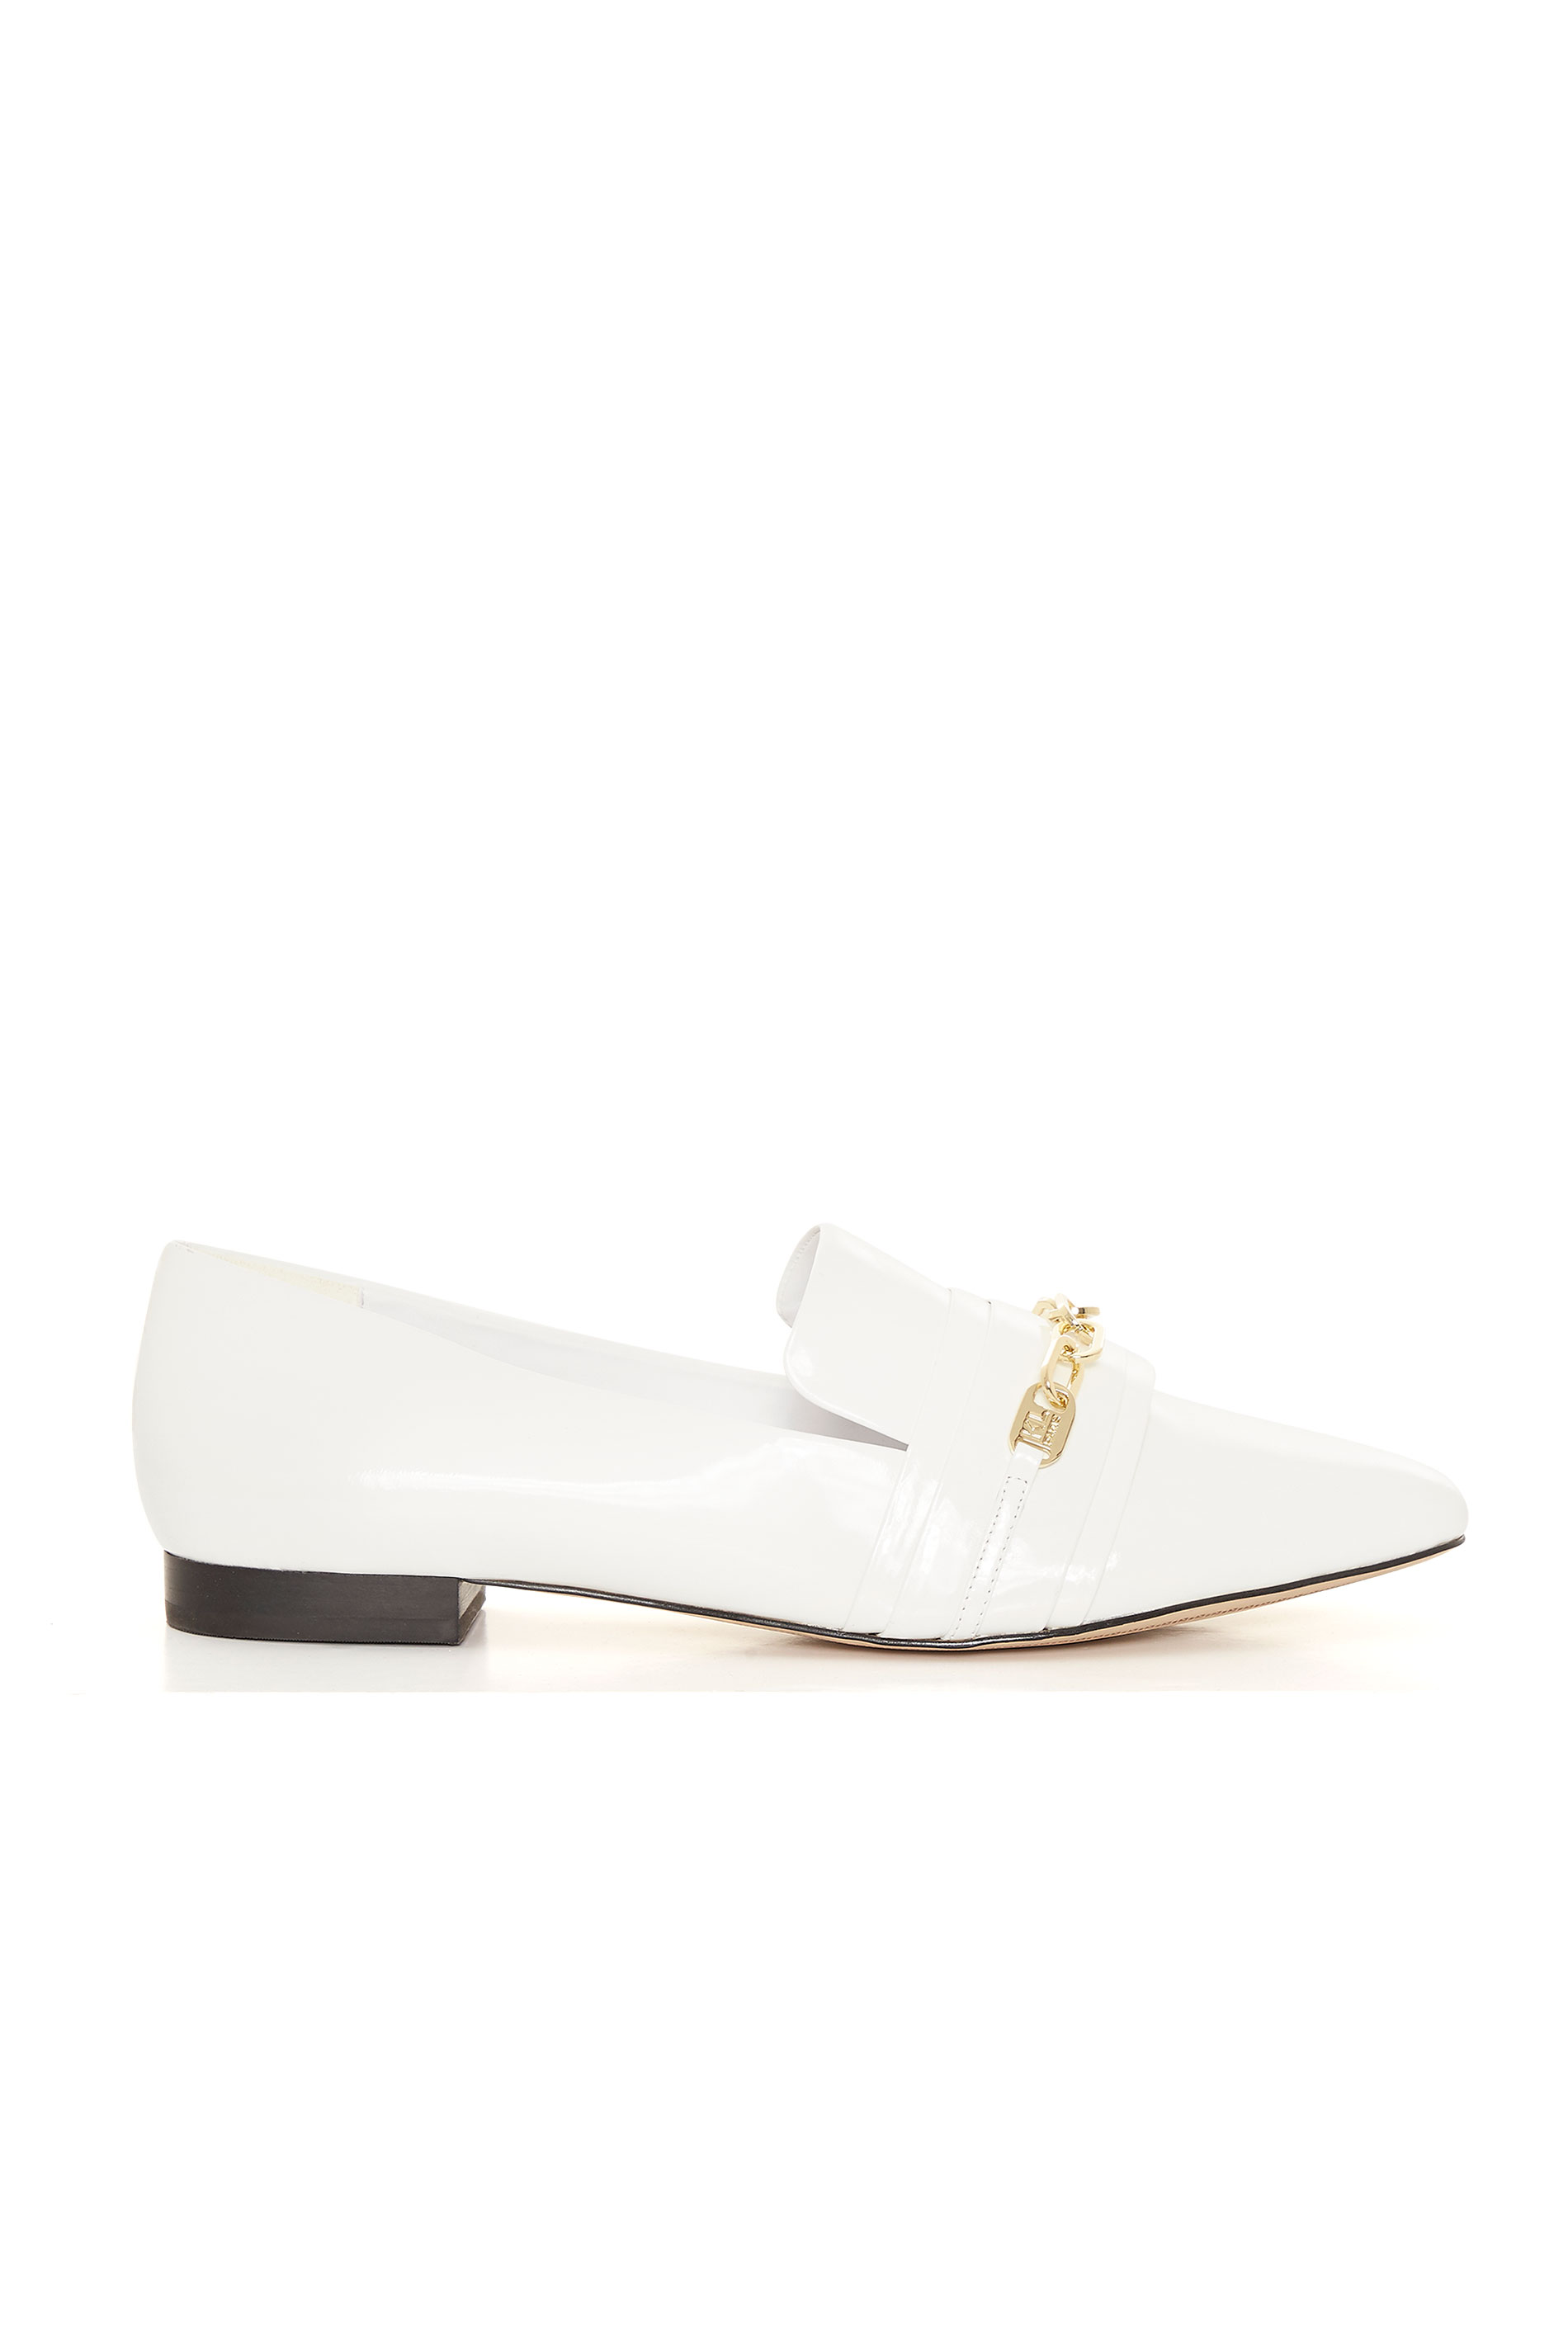 KARL LAGERFELD PARIS White Patent Leather Loafers